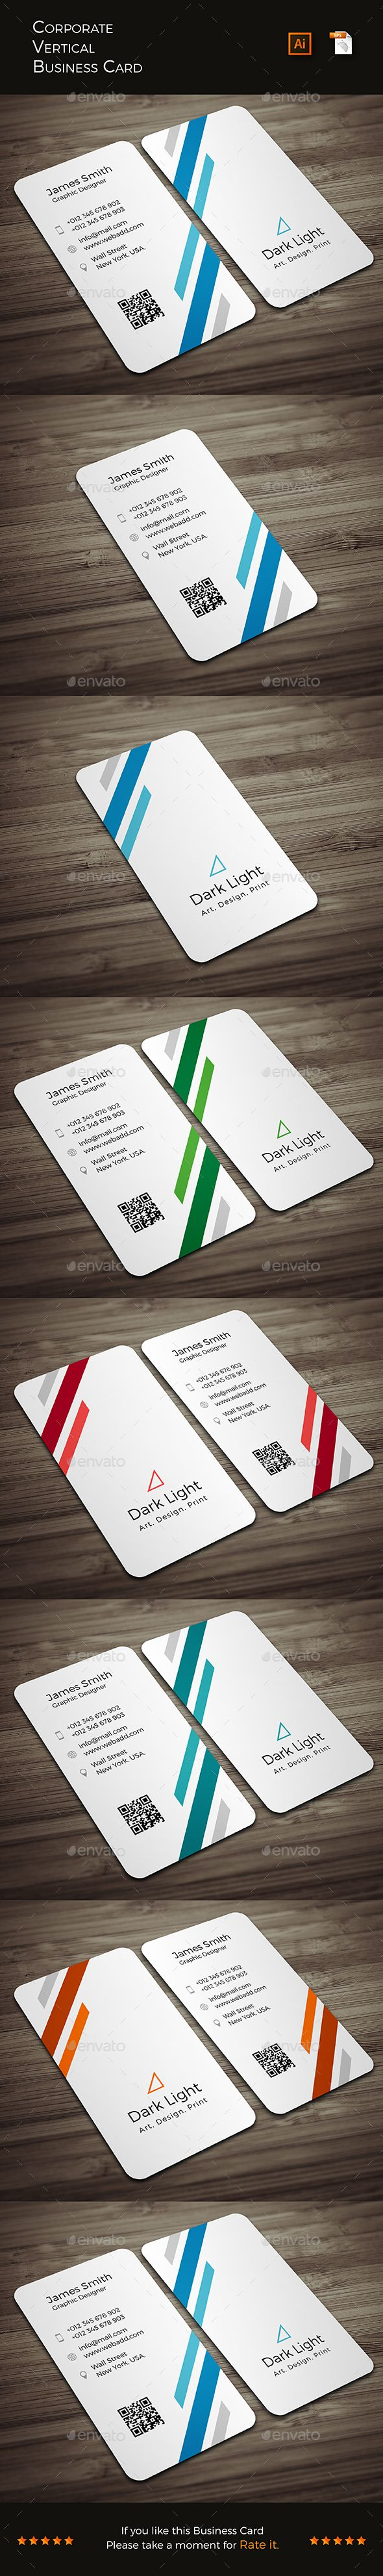 Corporate Vertical Business Card — Vector EPS #ai #corporate • Available here → https://graphicriver.net/item/corporate-vertical-business-card/16792011?ref=pxcr